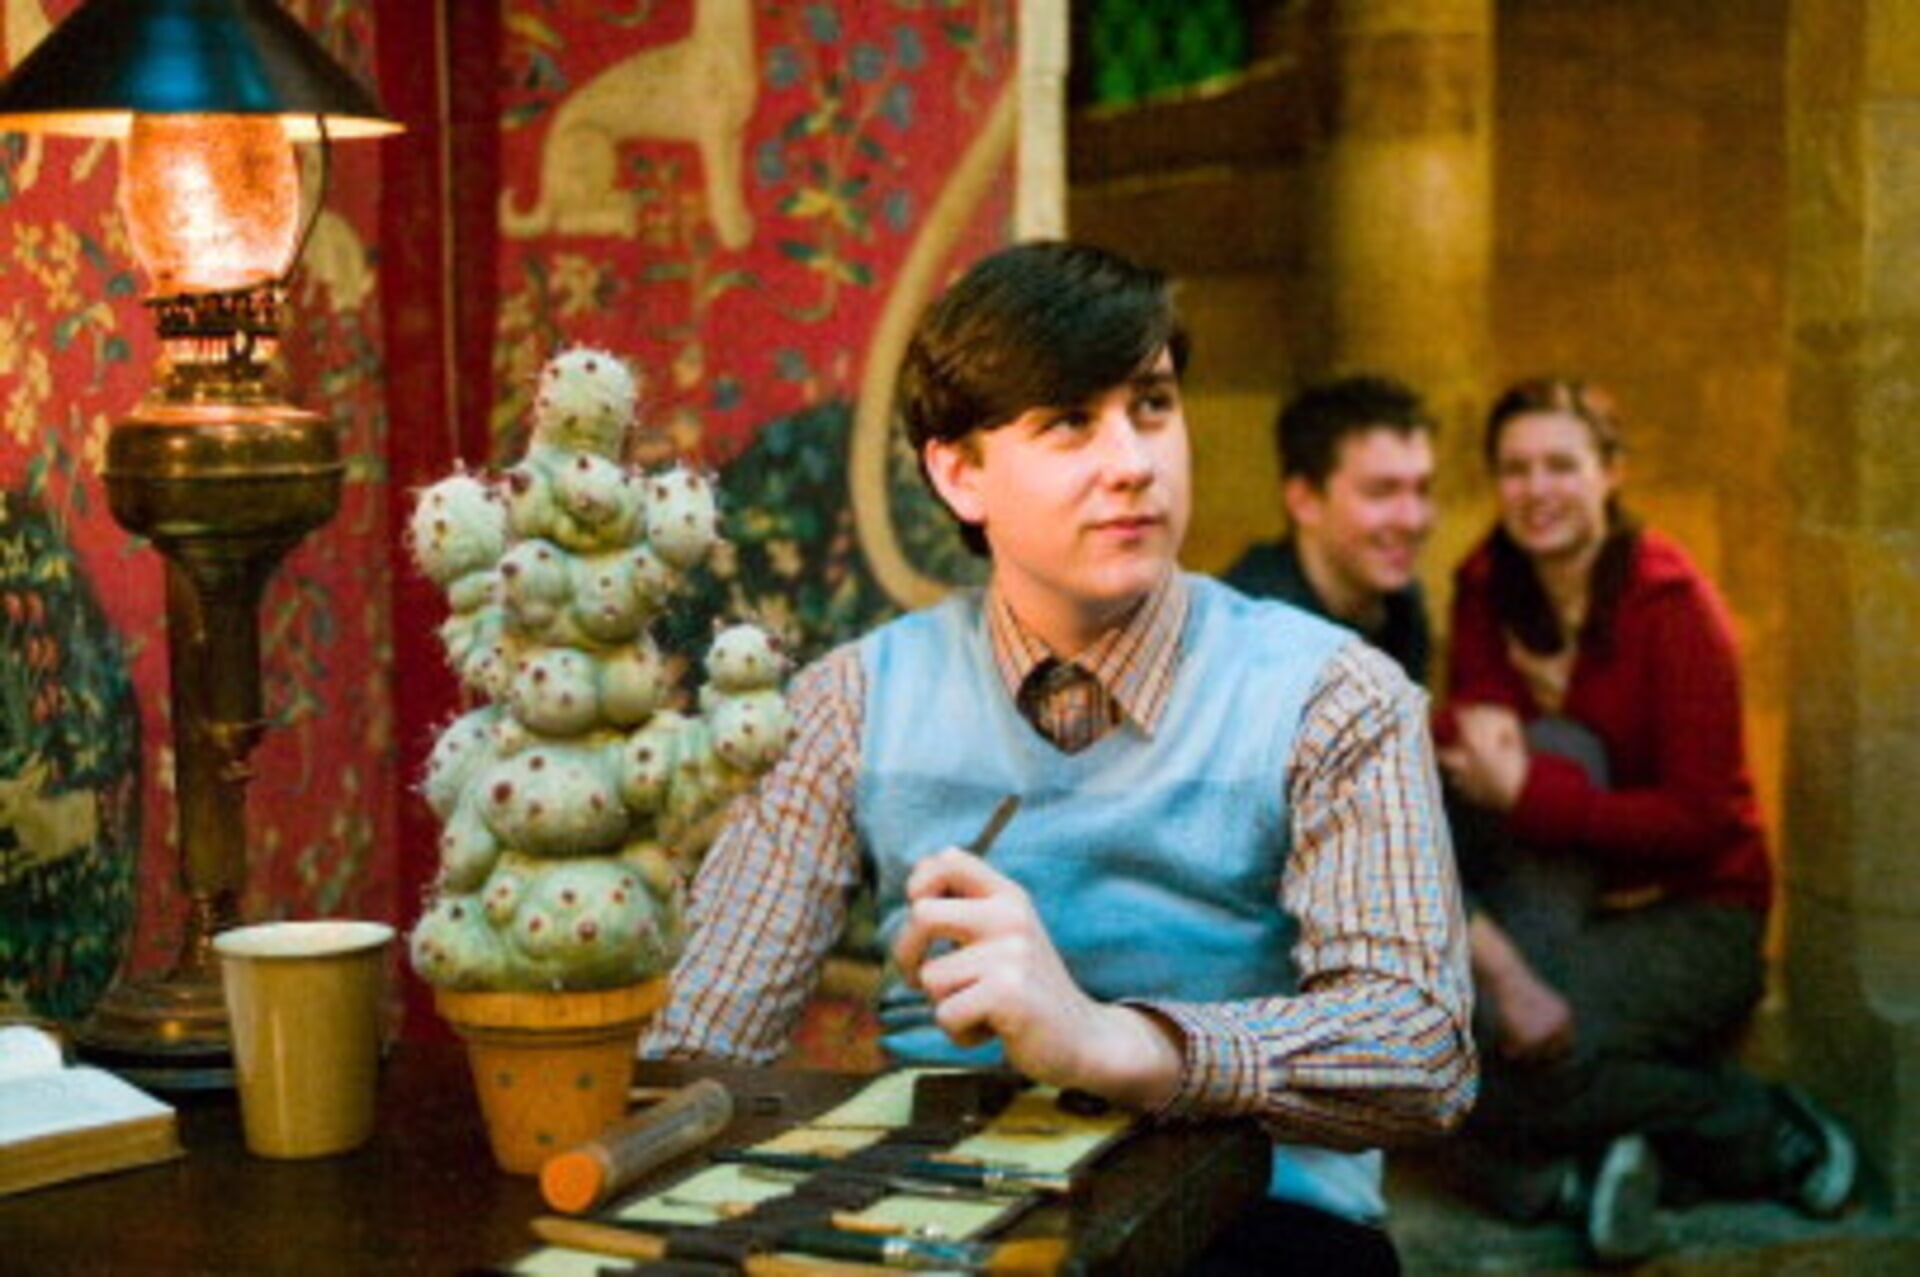 Harry Potter and the Order of the Phoenix - Image 10